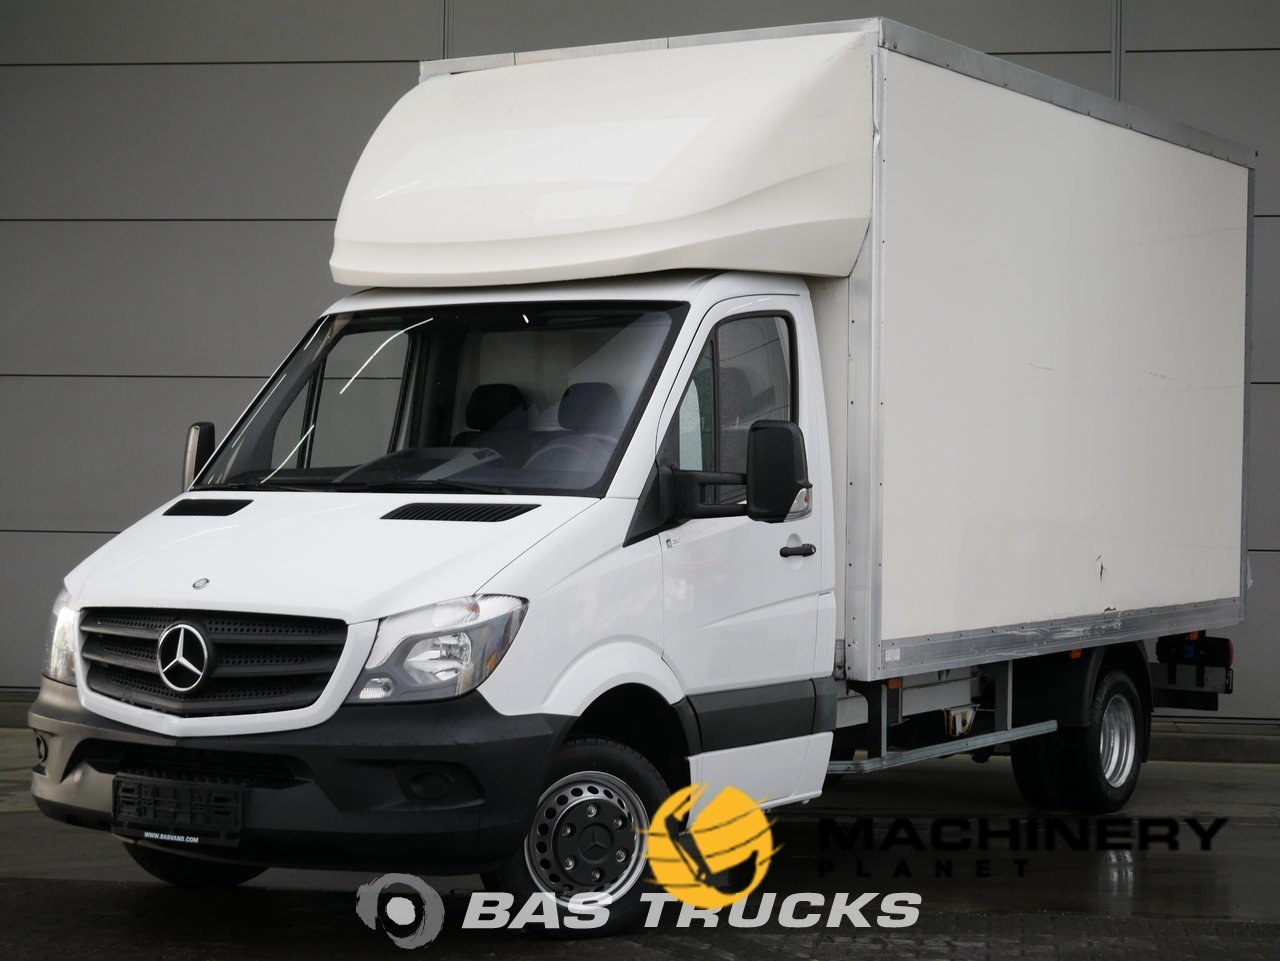 Used-Light-commercial-vehicle-Mercedes-Sprinter-2015_144409_1-1554199292048_5ca332fc0bd65-1.jpg